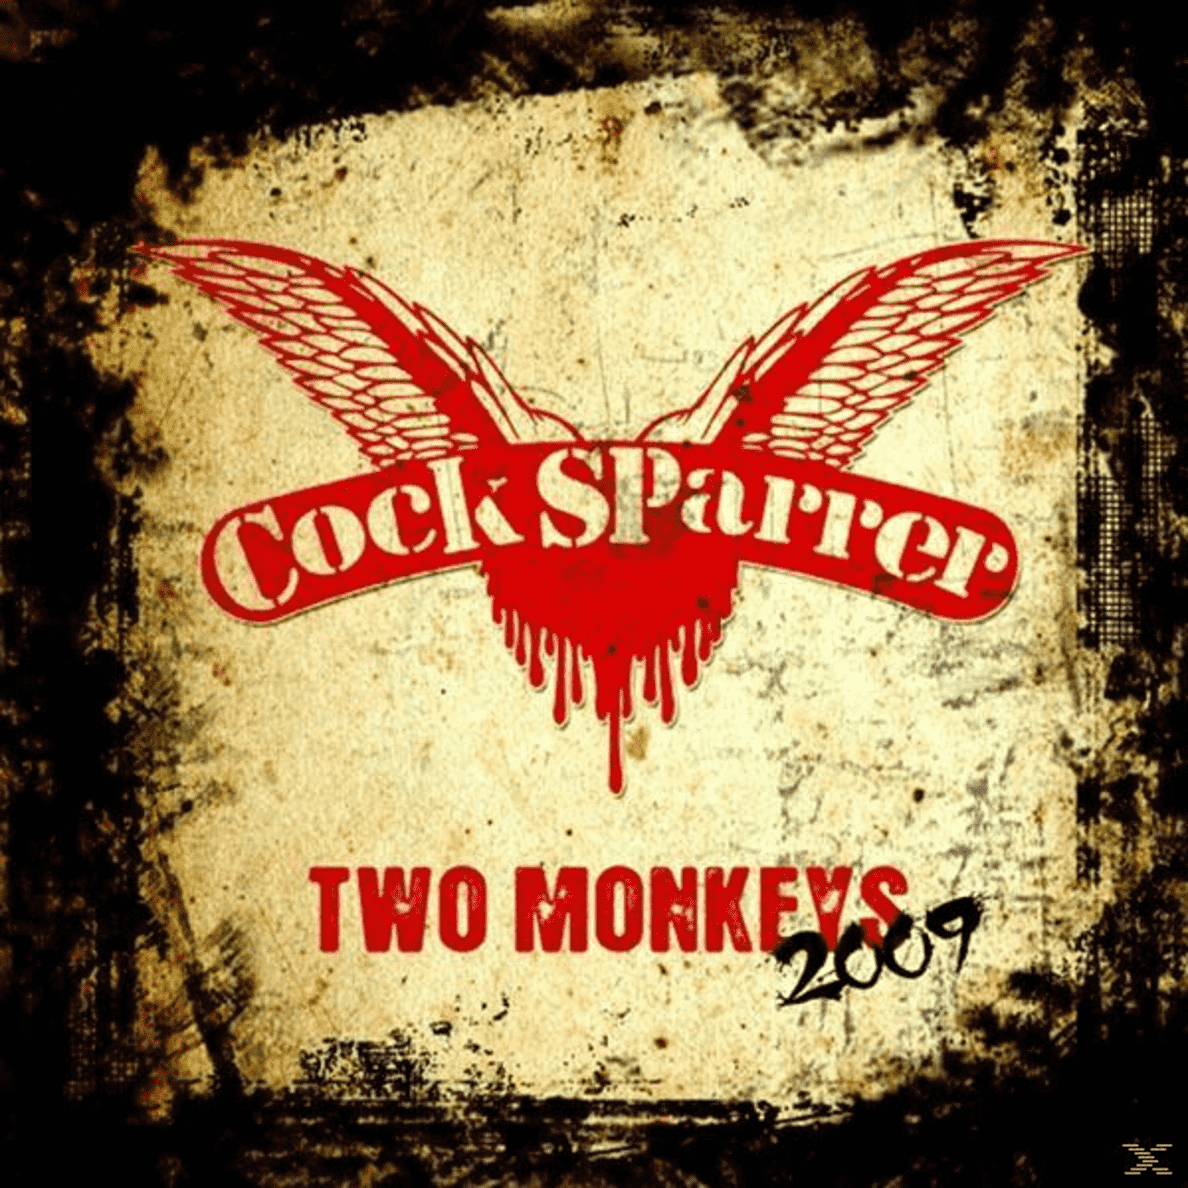 Two Monkeys 2009 Cock Sparrer auf CD